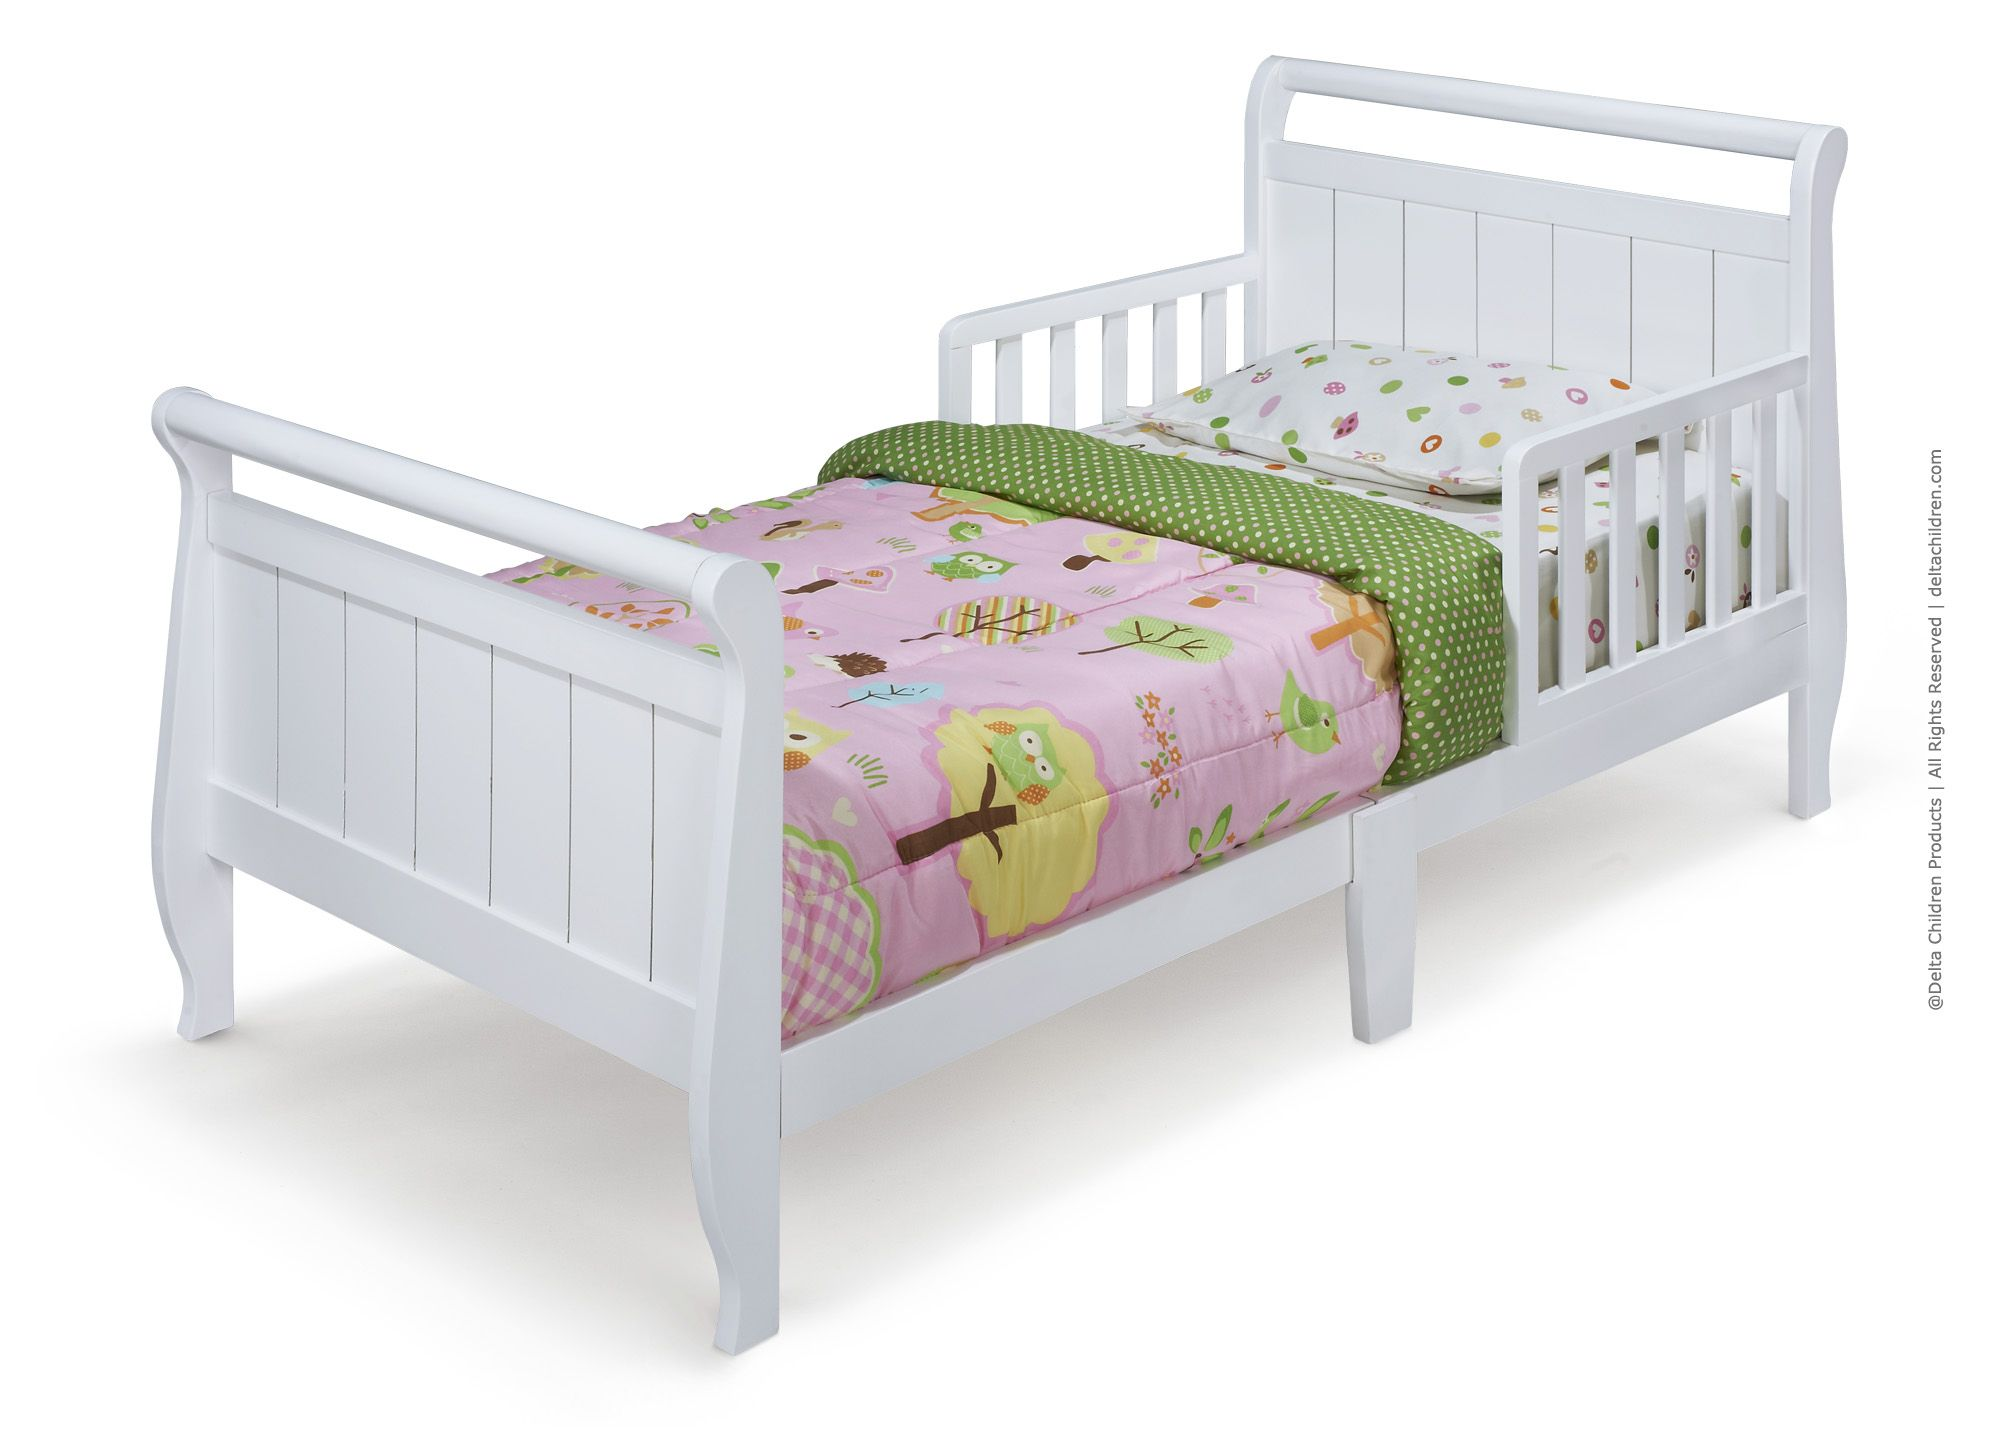 Toddler Bed Sleigh Design For Your 279 99 Discover The Best Beds In Sellers Results 1 24 Of 135 Toys R Us Make